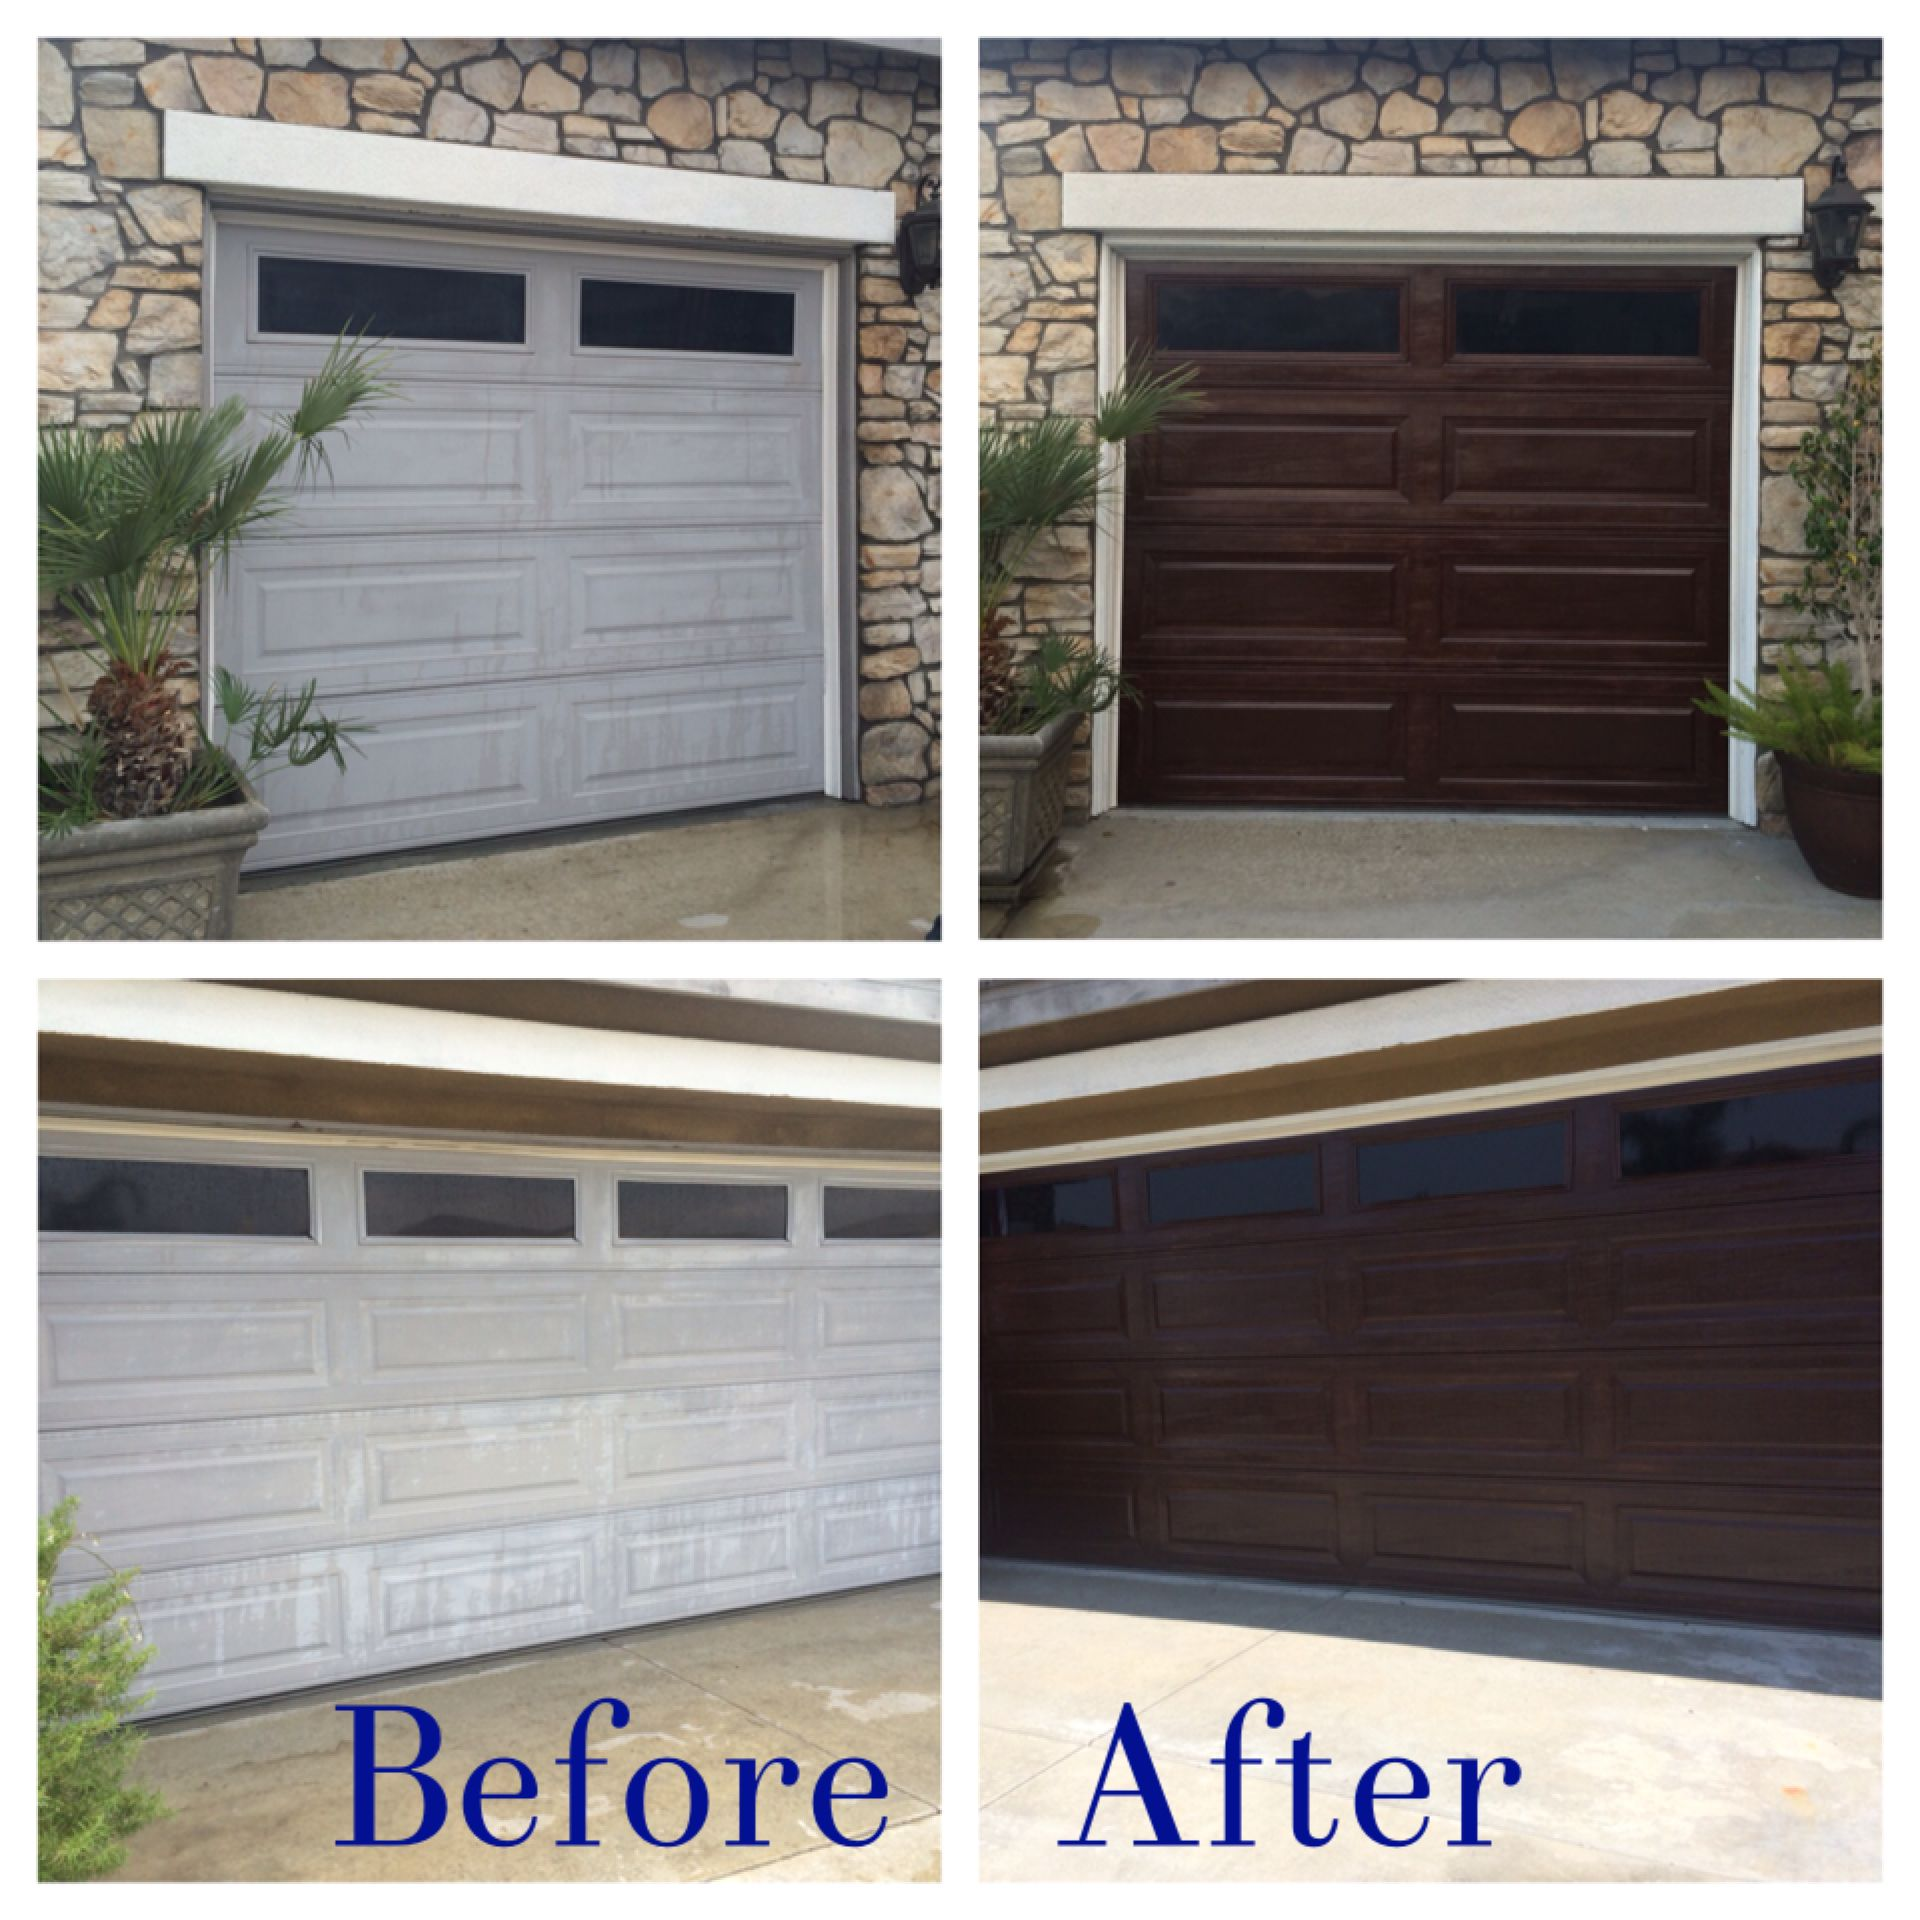 Diy Garage Door Makeover Using Minwax Gel Stain In Hickory Garage